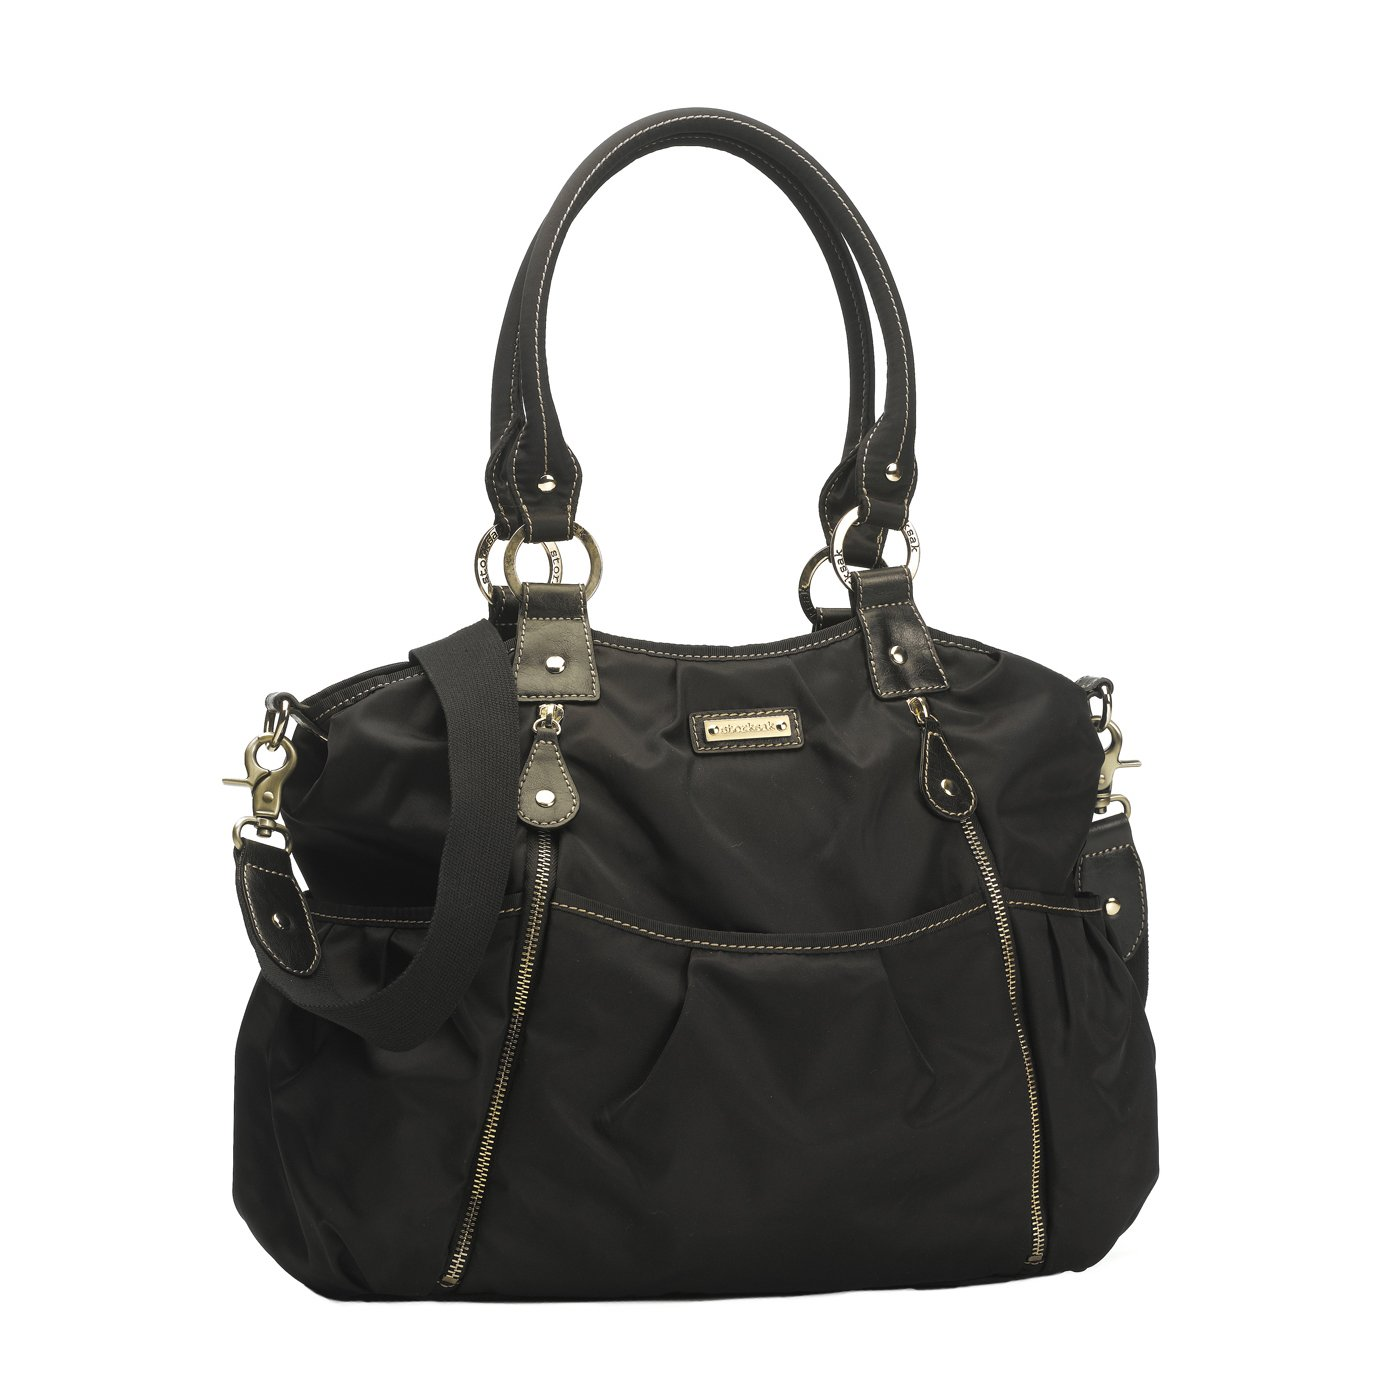 Storksak Olivia Diaper Bag, Black